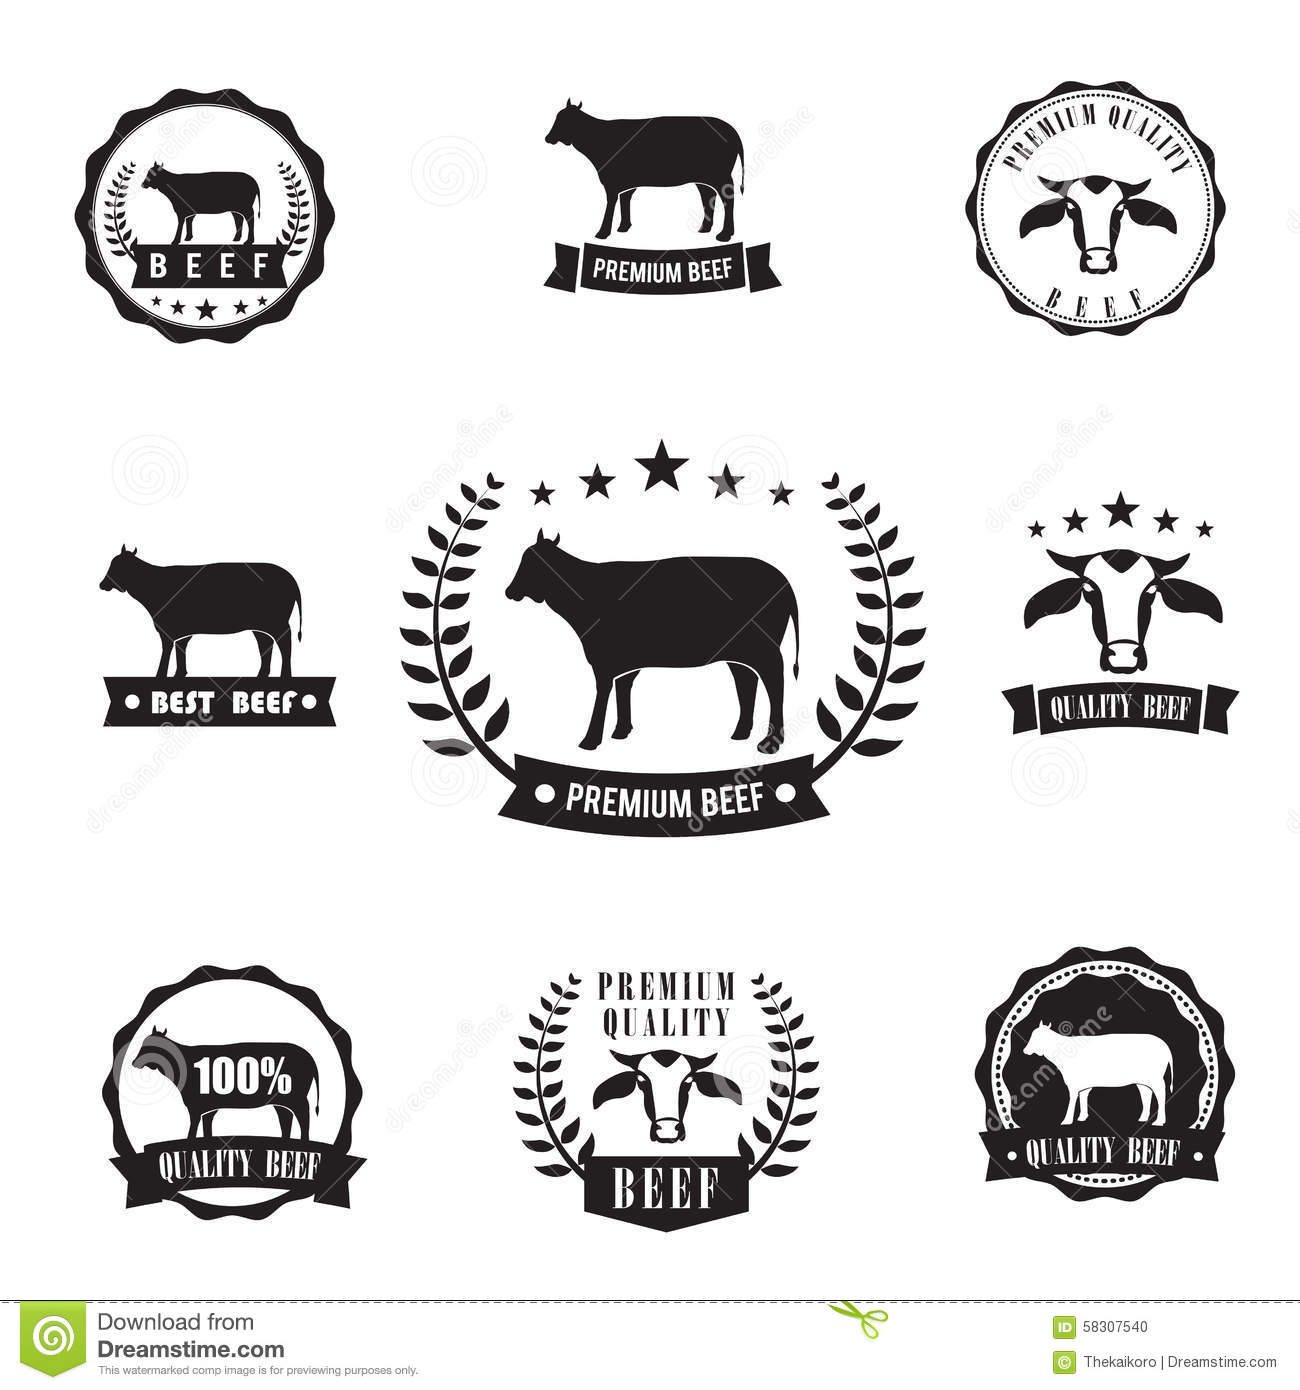 Cow Beef Sihouette Symbol For Logo Stamp, Design Element Stock Vector ...